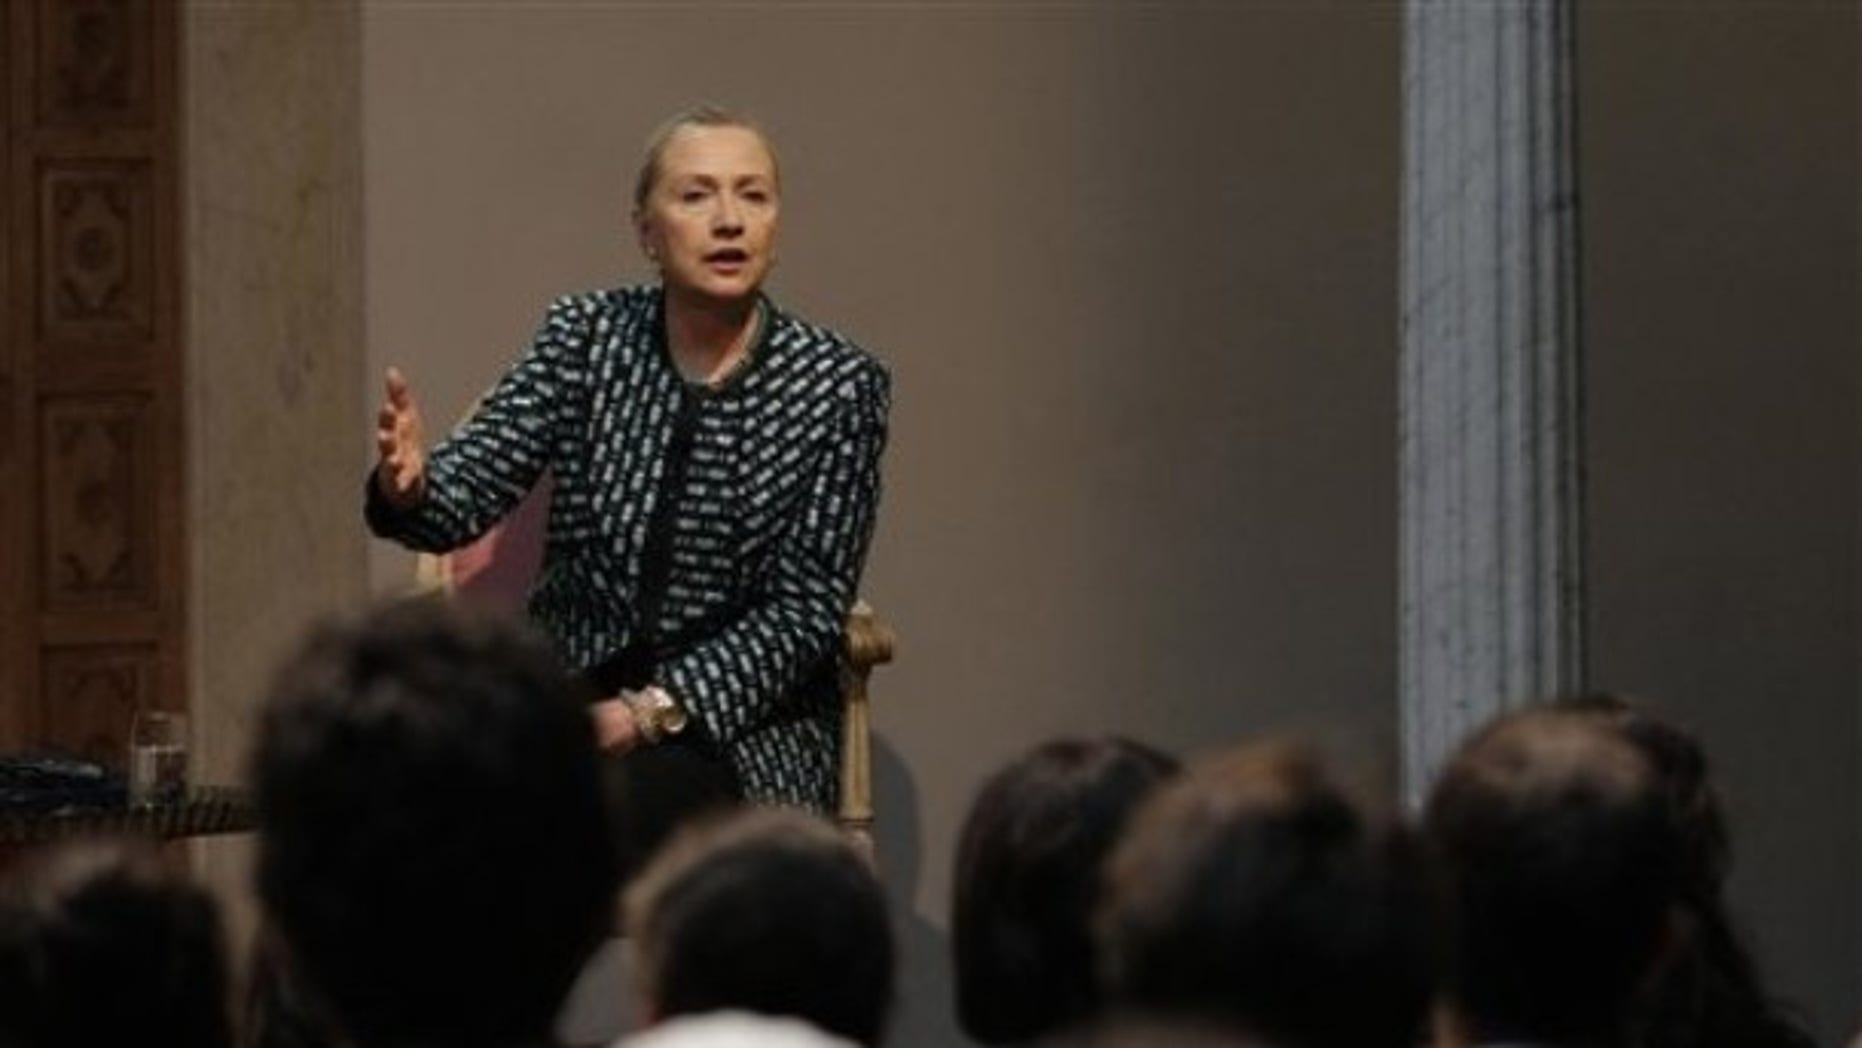 Feb. 25, 2012: Secretary of State Hillary Rodham Clinton participates in a town hall meeting in Carthage, Tunisia.